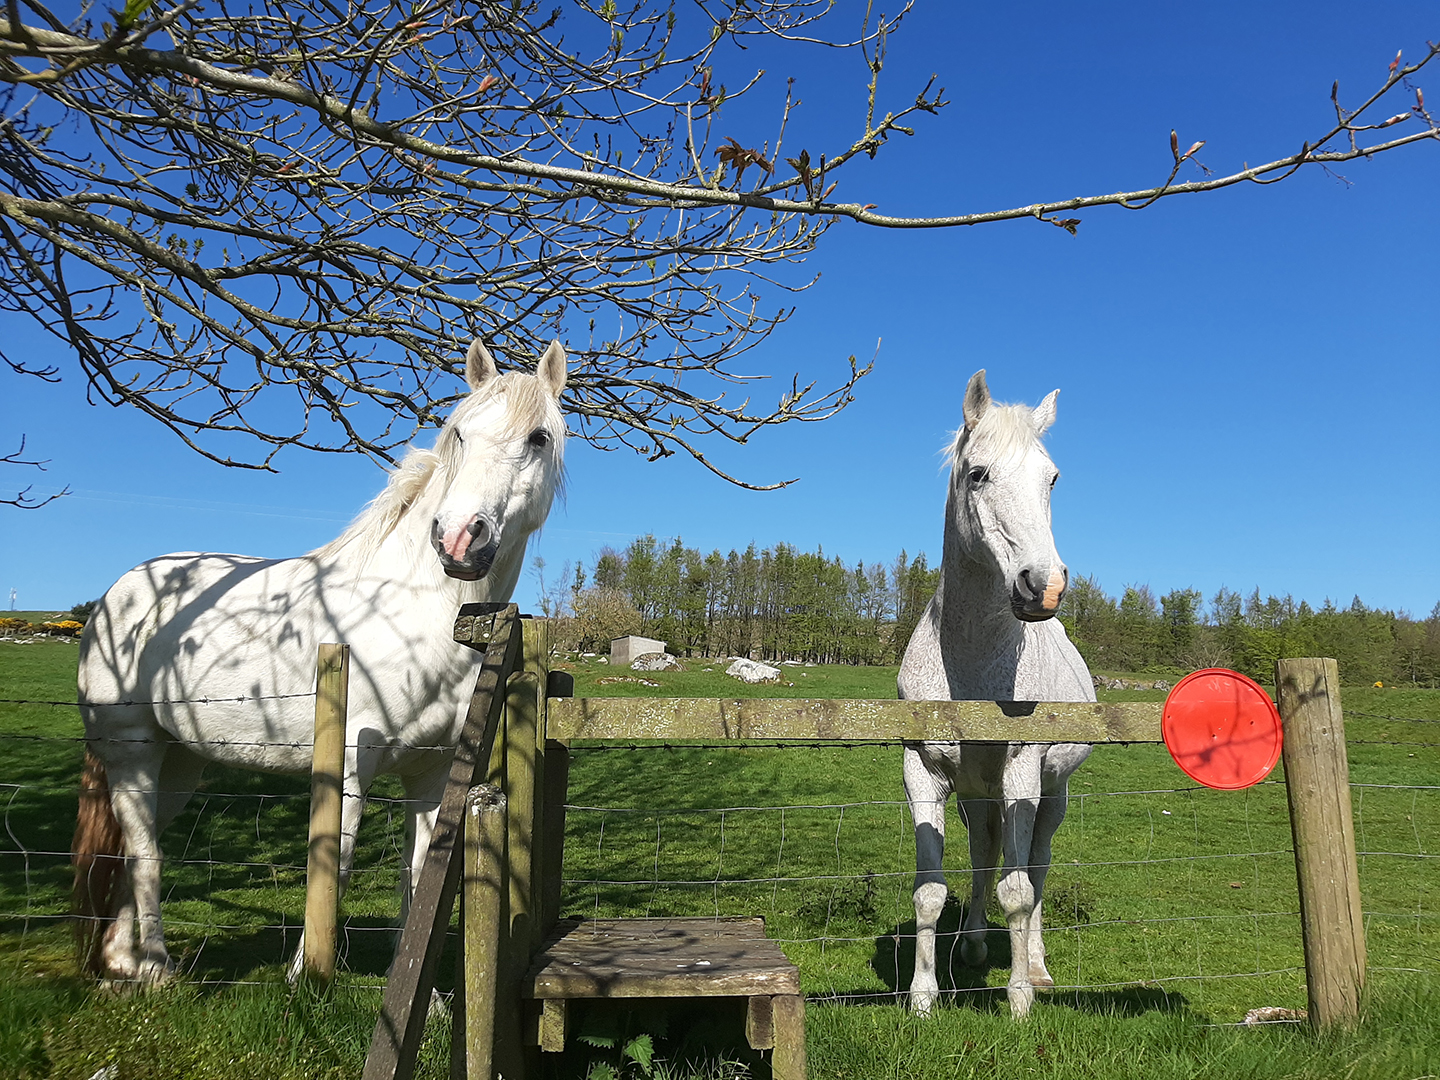 Two white horses on the farm